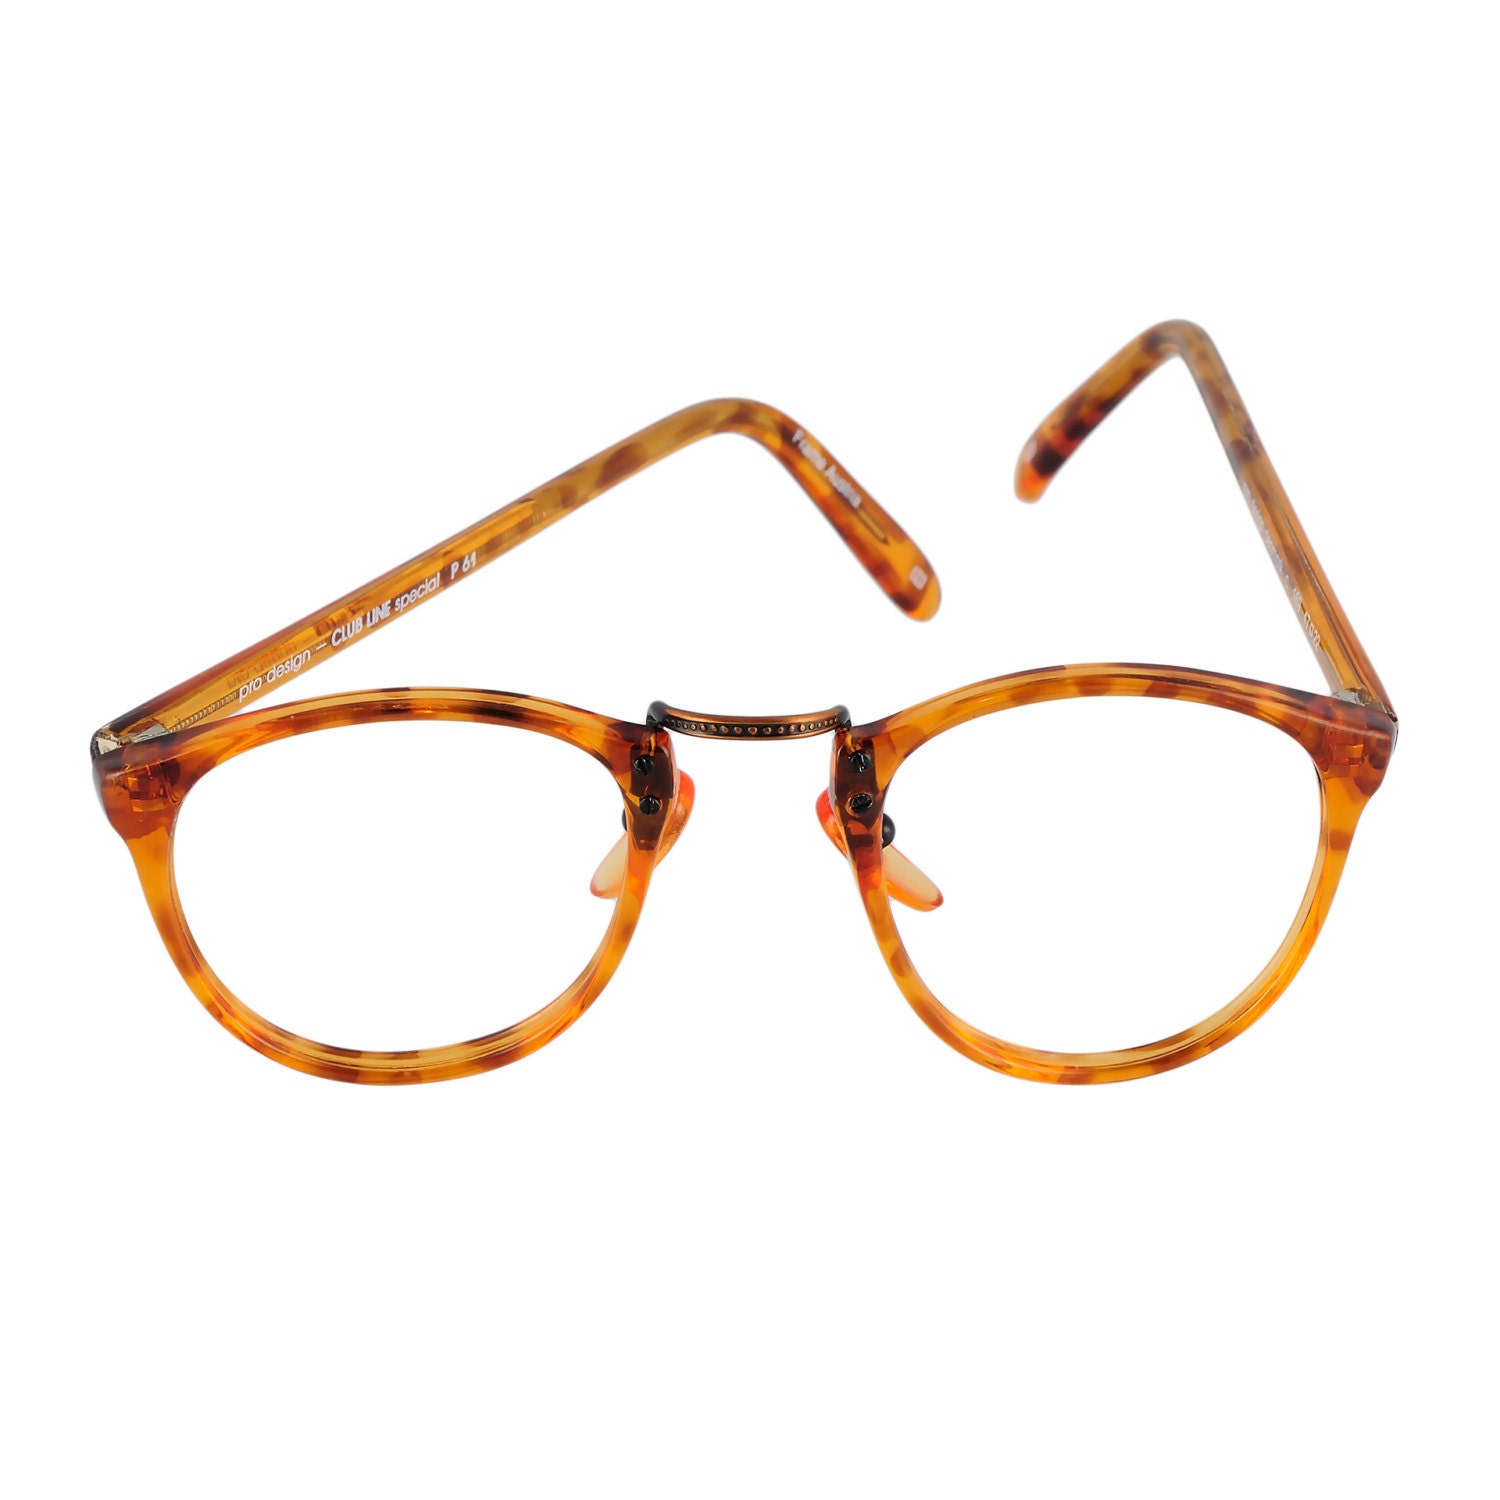 Pro design Eyeglasses P61 169 47-22 Made in Austria ...